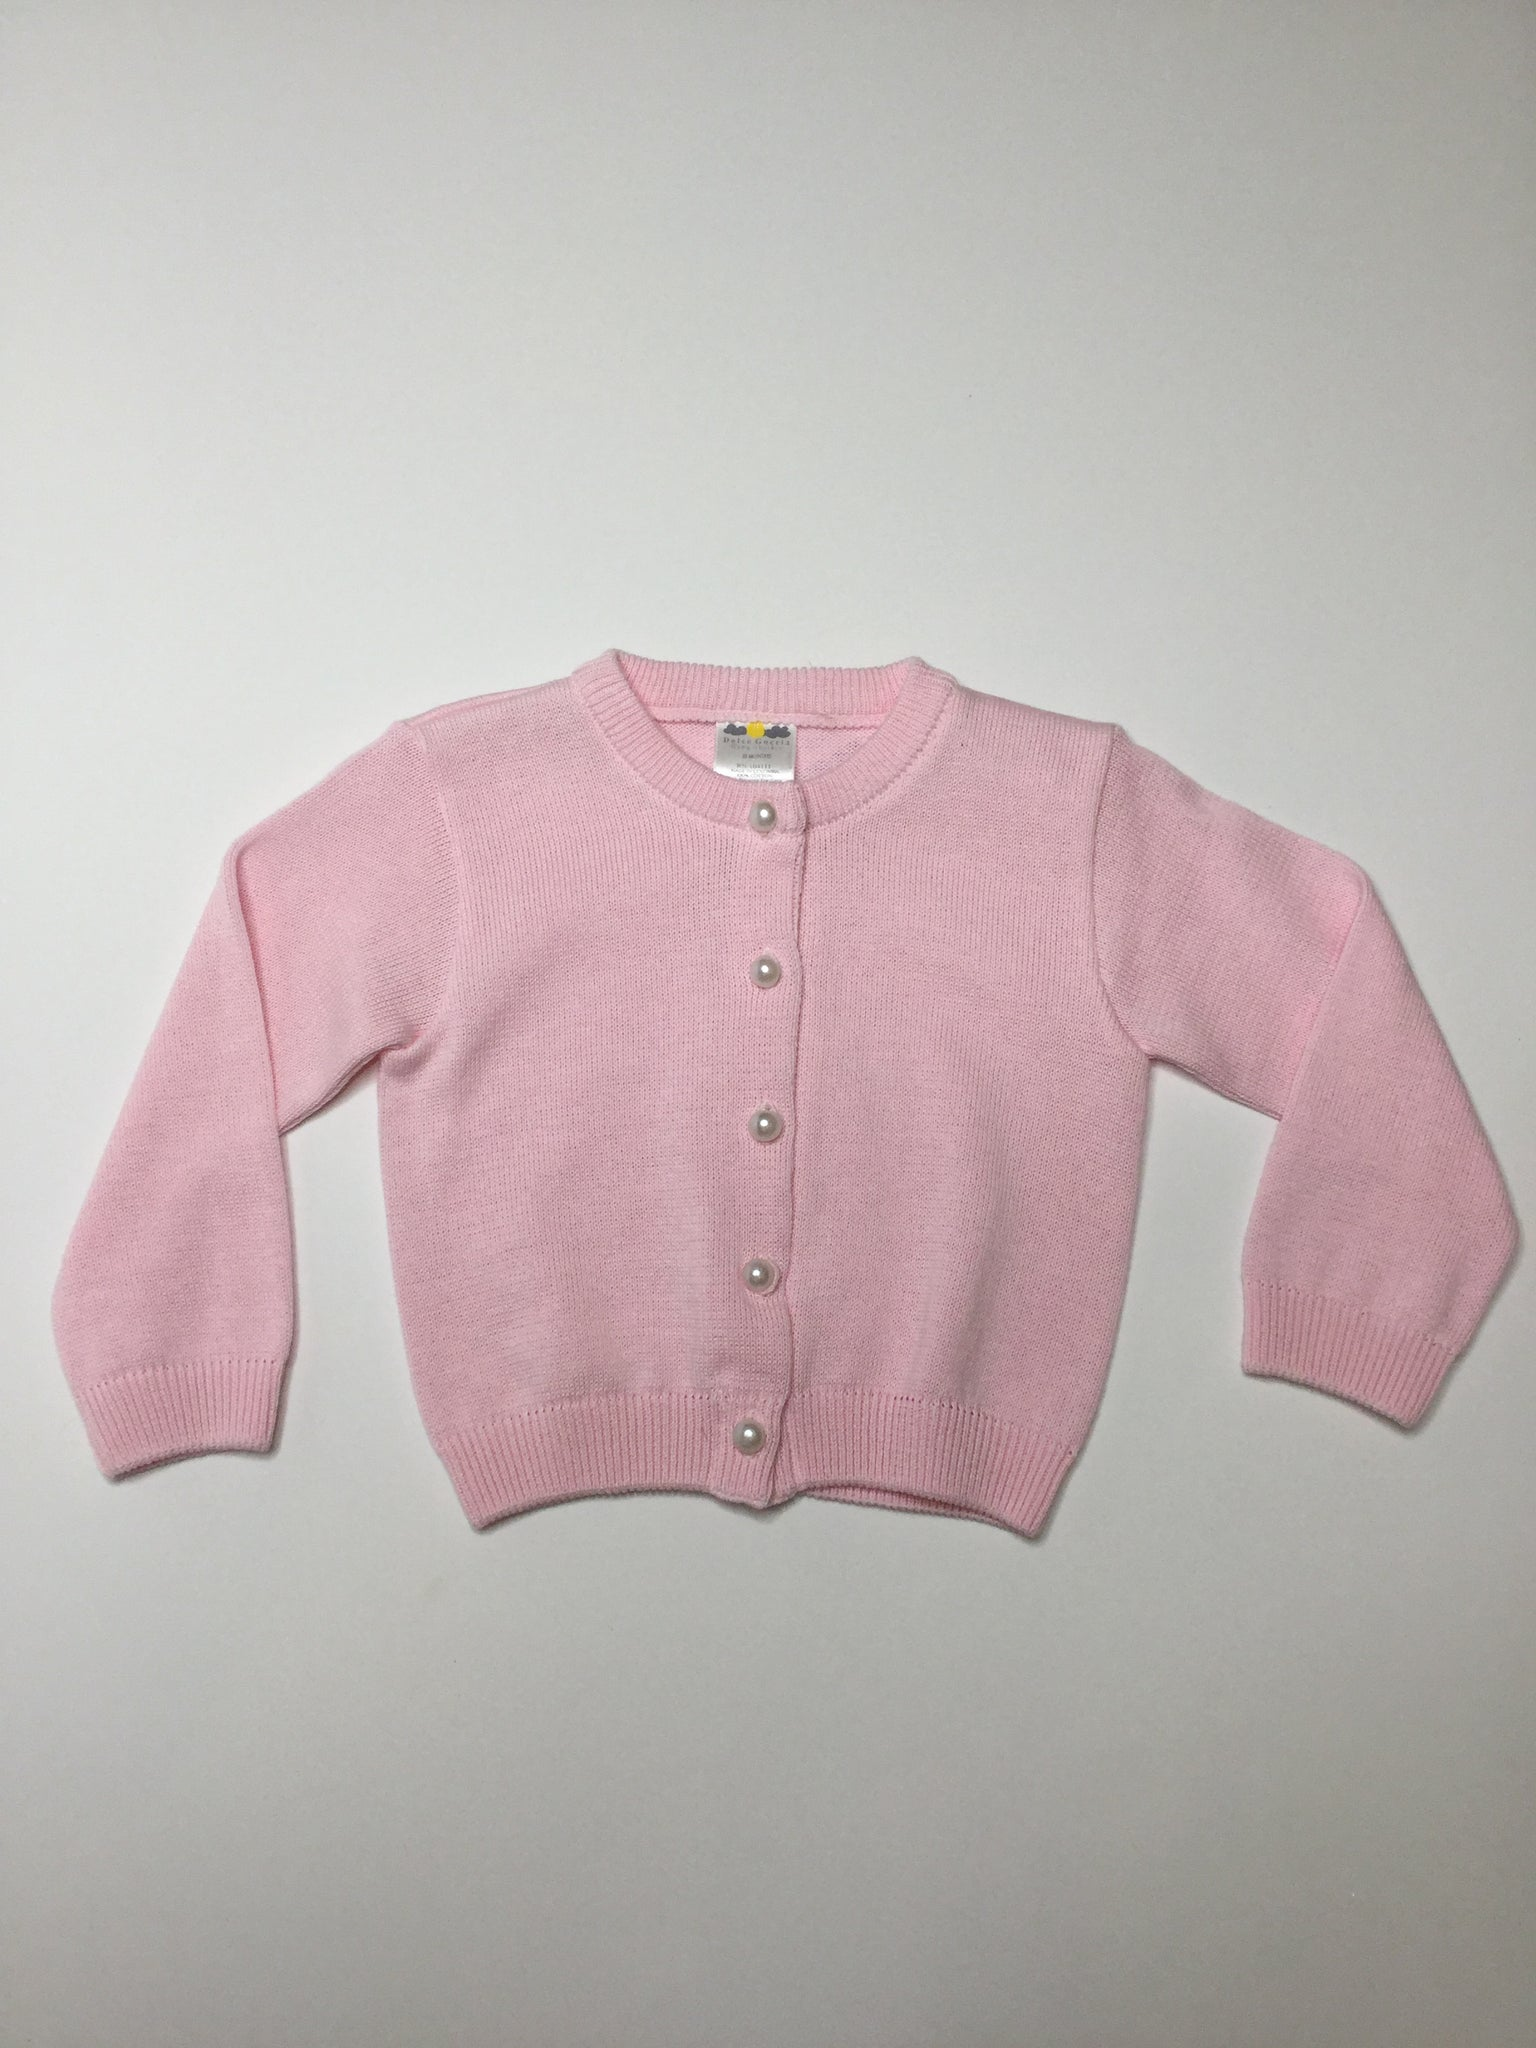 Dolce Goccia Pearl Button Sweater Cardigan pink